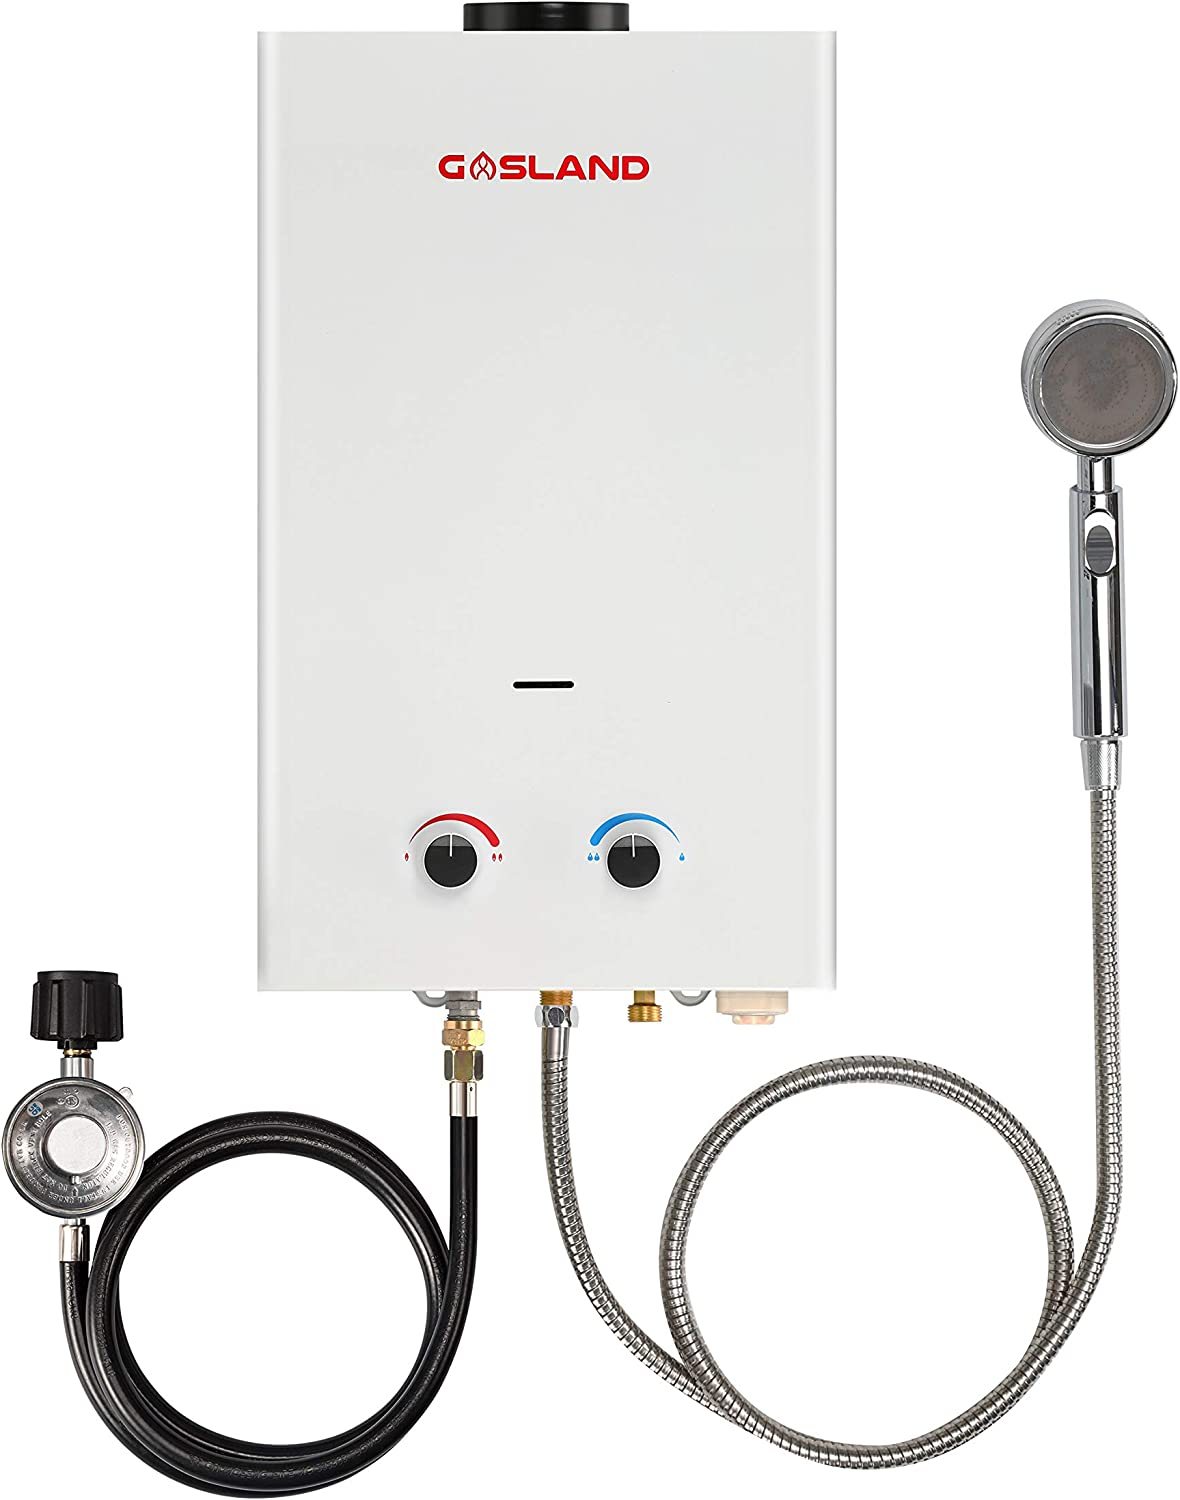 Tankless Water Heater, GASLAND Outdoors Propane Water Heater 10L BS264 2.64GPM, Portable Hot Water Heater for Cabin, Camp Water Heater for RV, Overheating Protection, Easy to Install, White